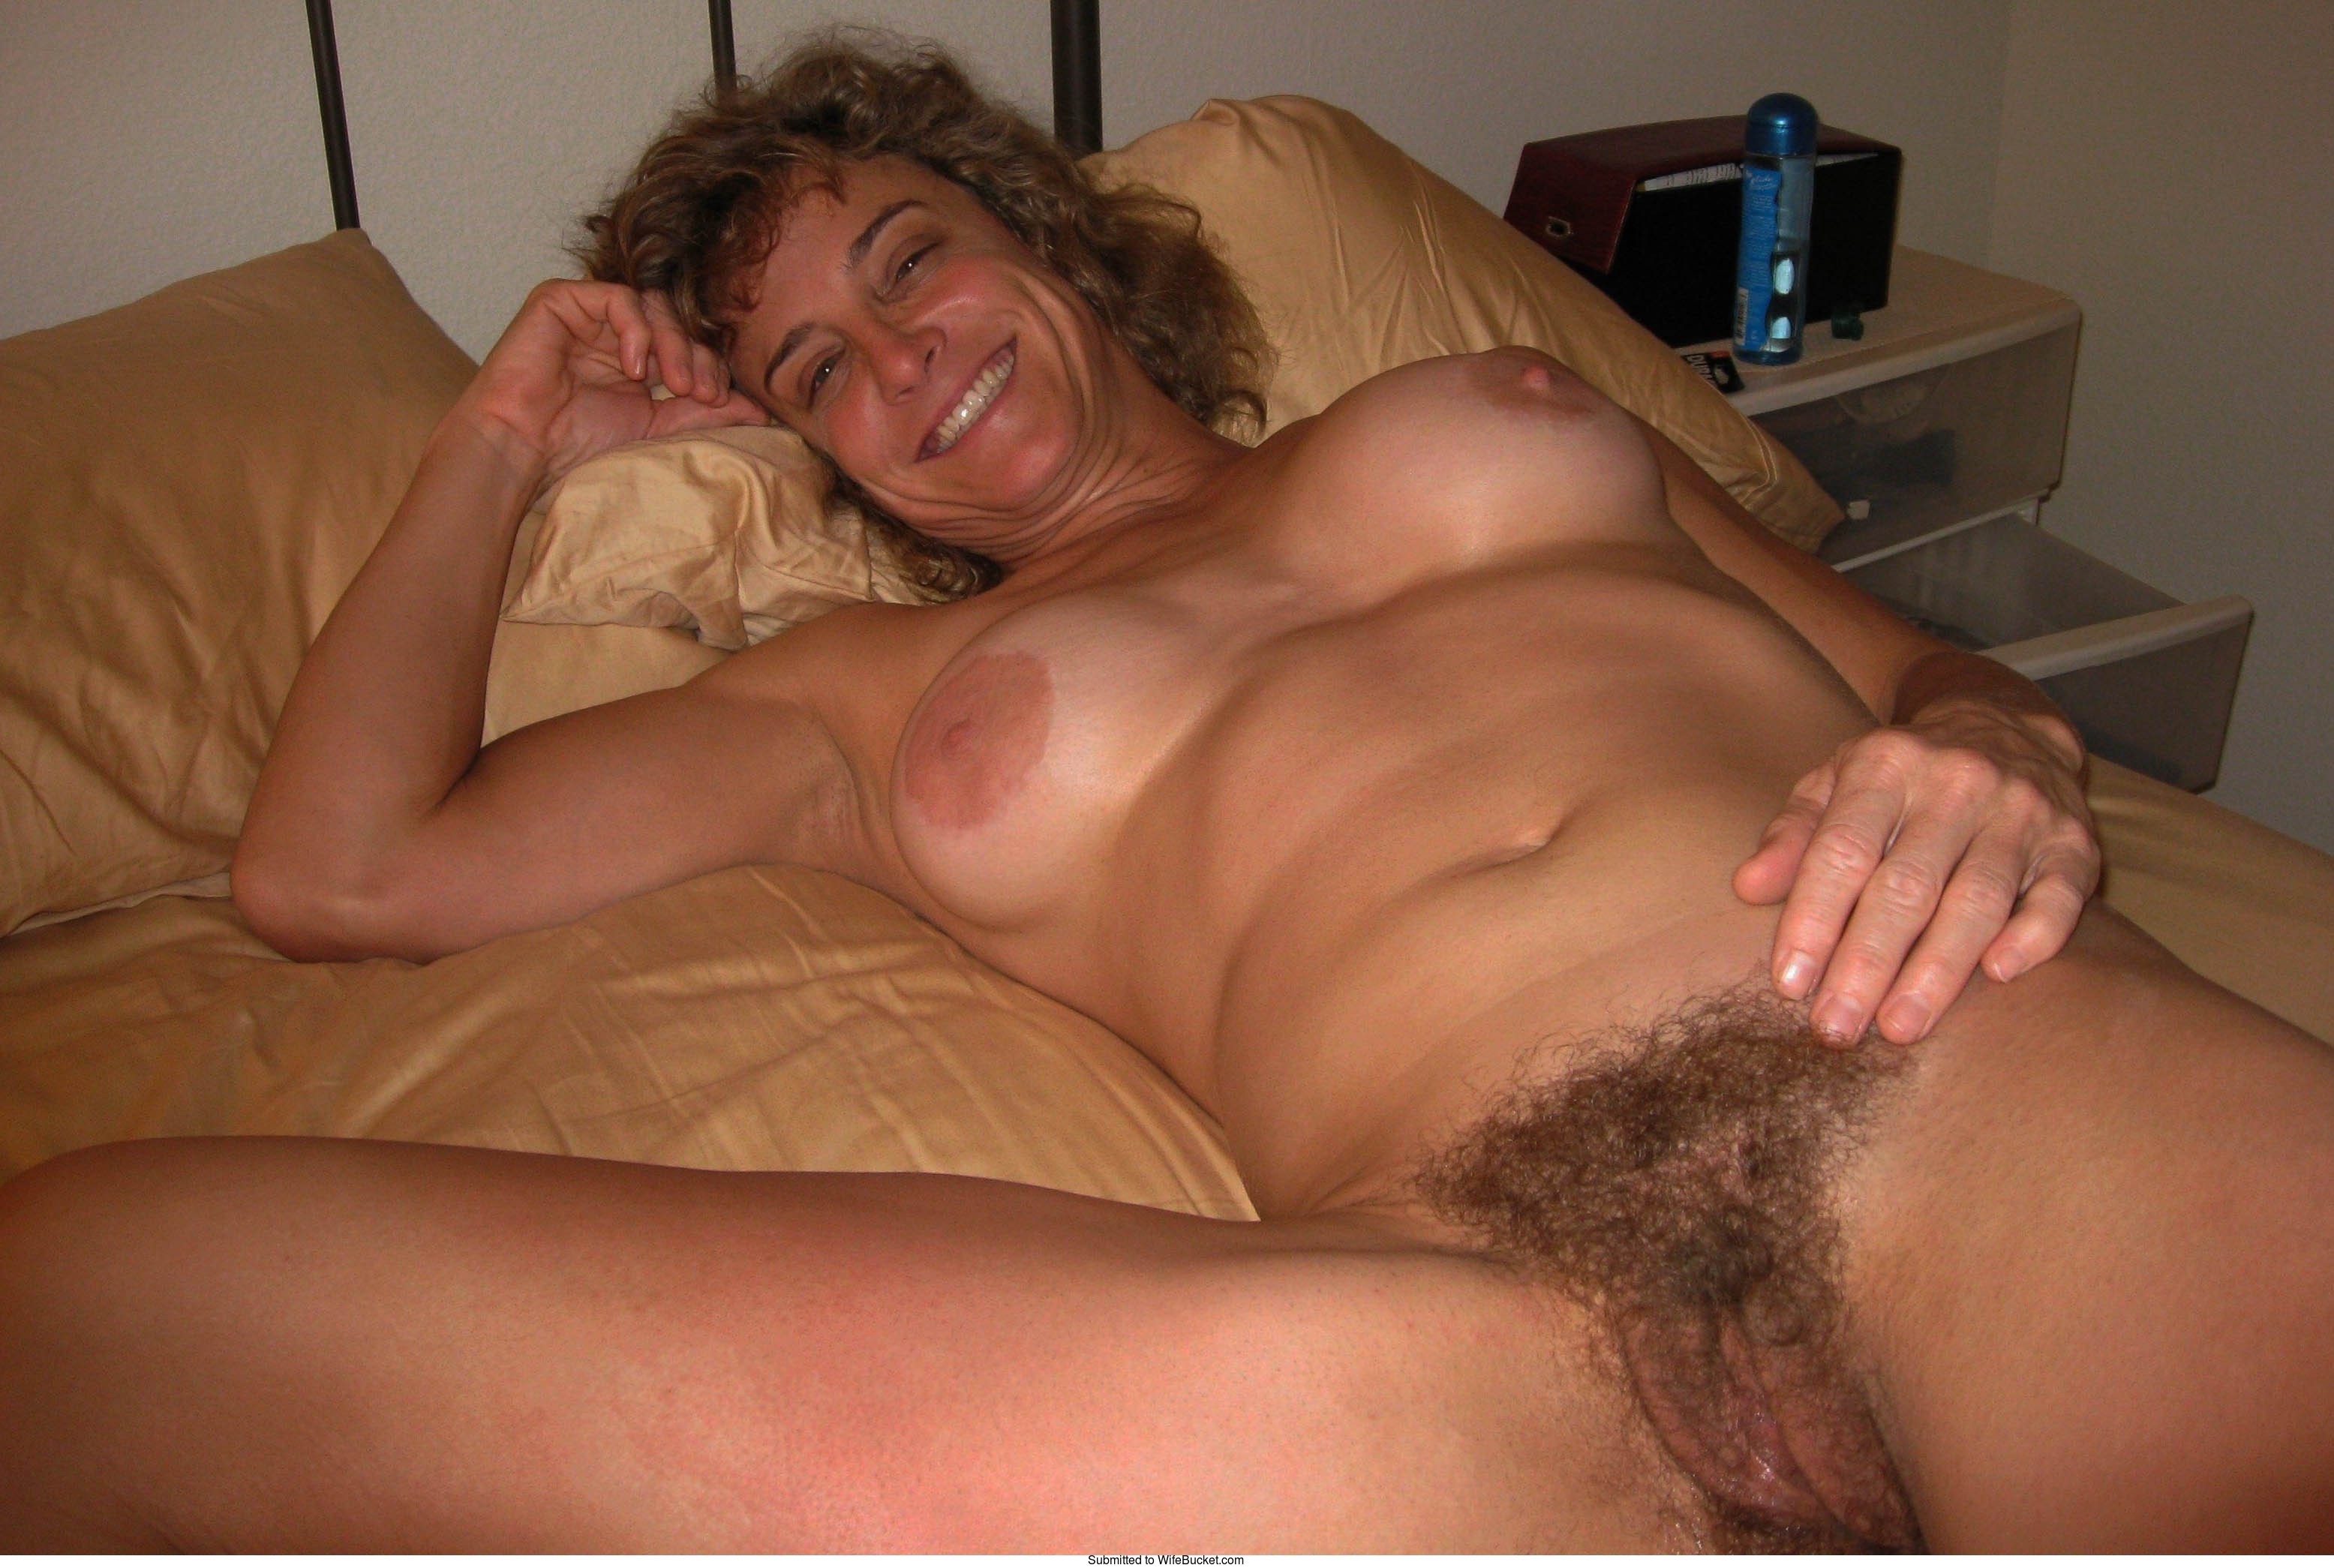 Hairy Pussies From Real Milfs And Amateur Wives